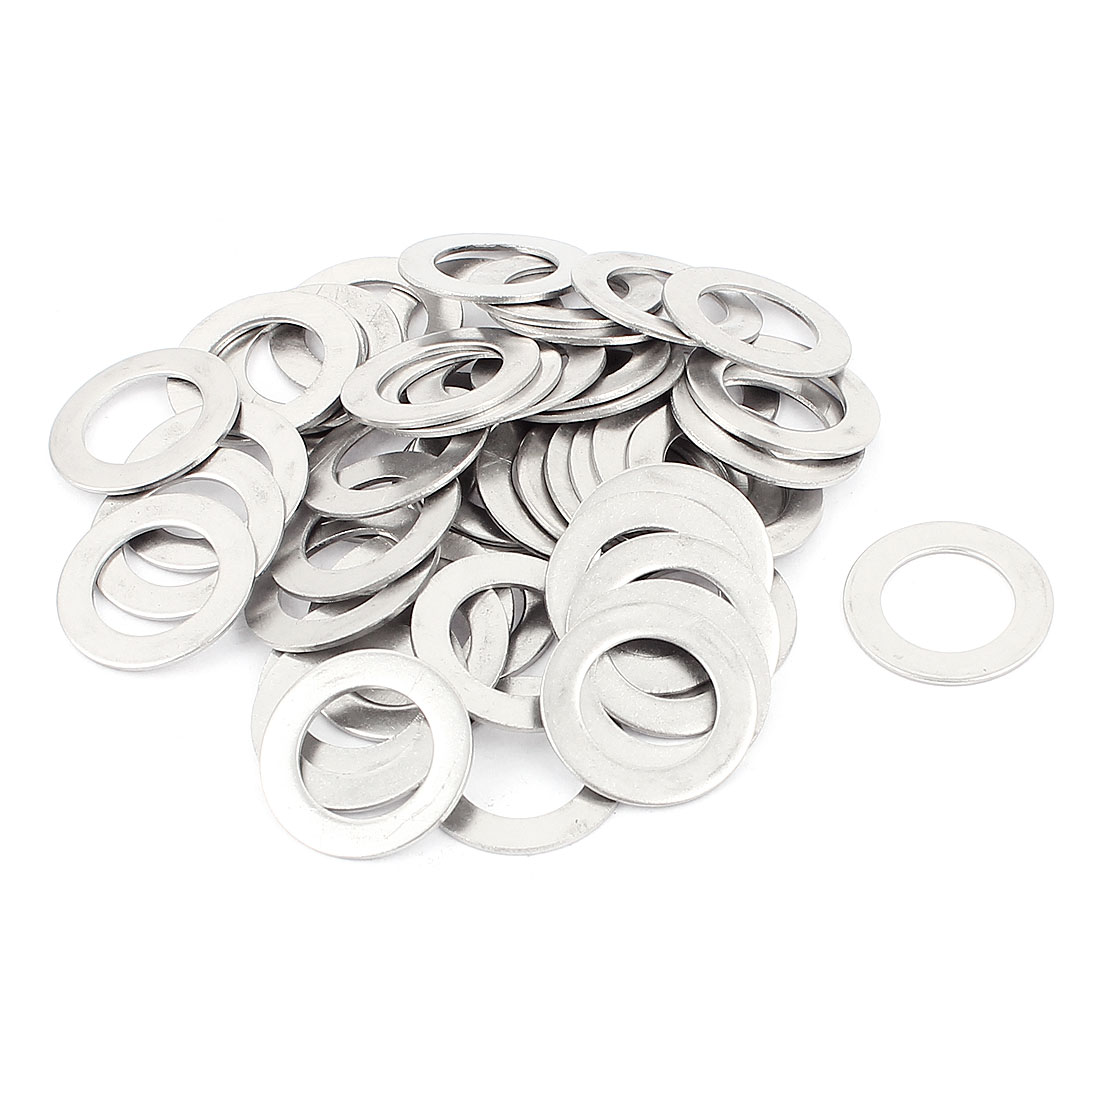 M12.8x20.8x1mm 304 Stainless Steel Plain Finish Flat Washer 50pcs